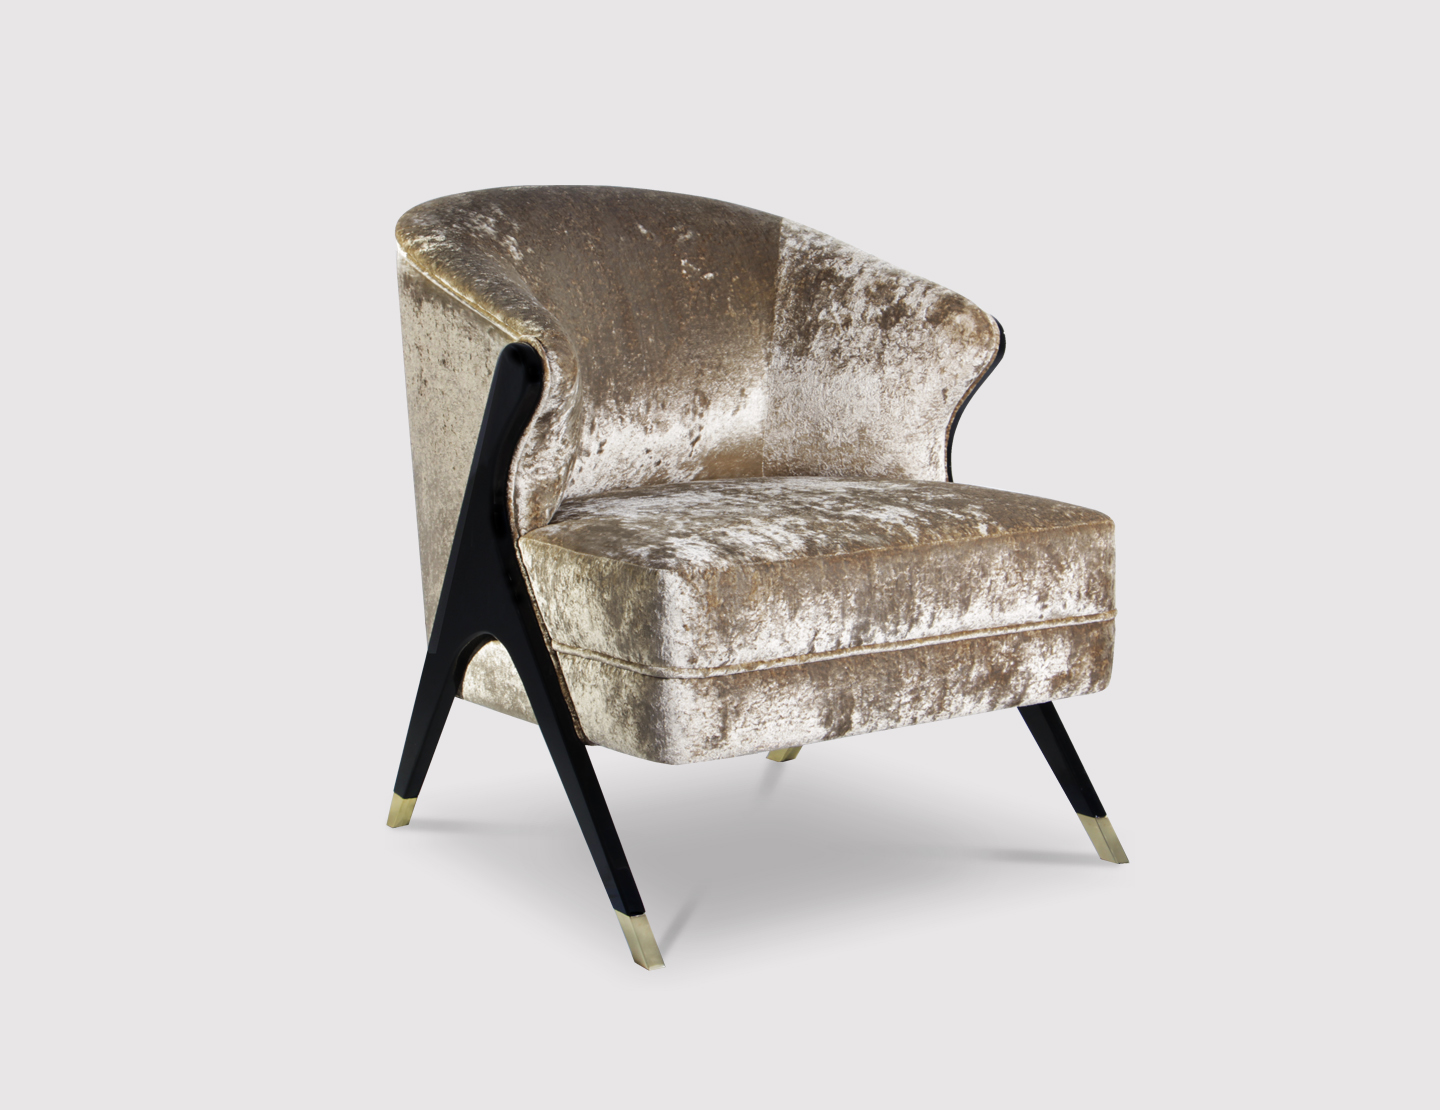 Naomi chair by KOKET at Decorex - upholstered lounge chair - luxury furniture - glamorous living room chairs decorex Toast to the Future with KOKET at Decorex 2017 Naomi chair by KOKET